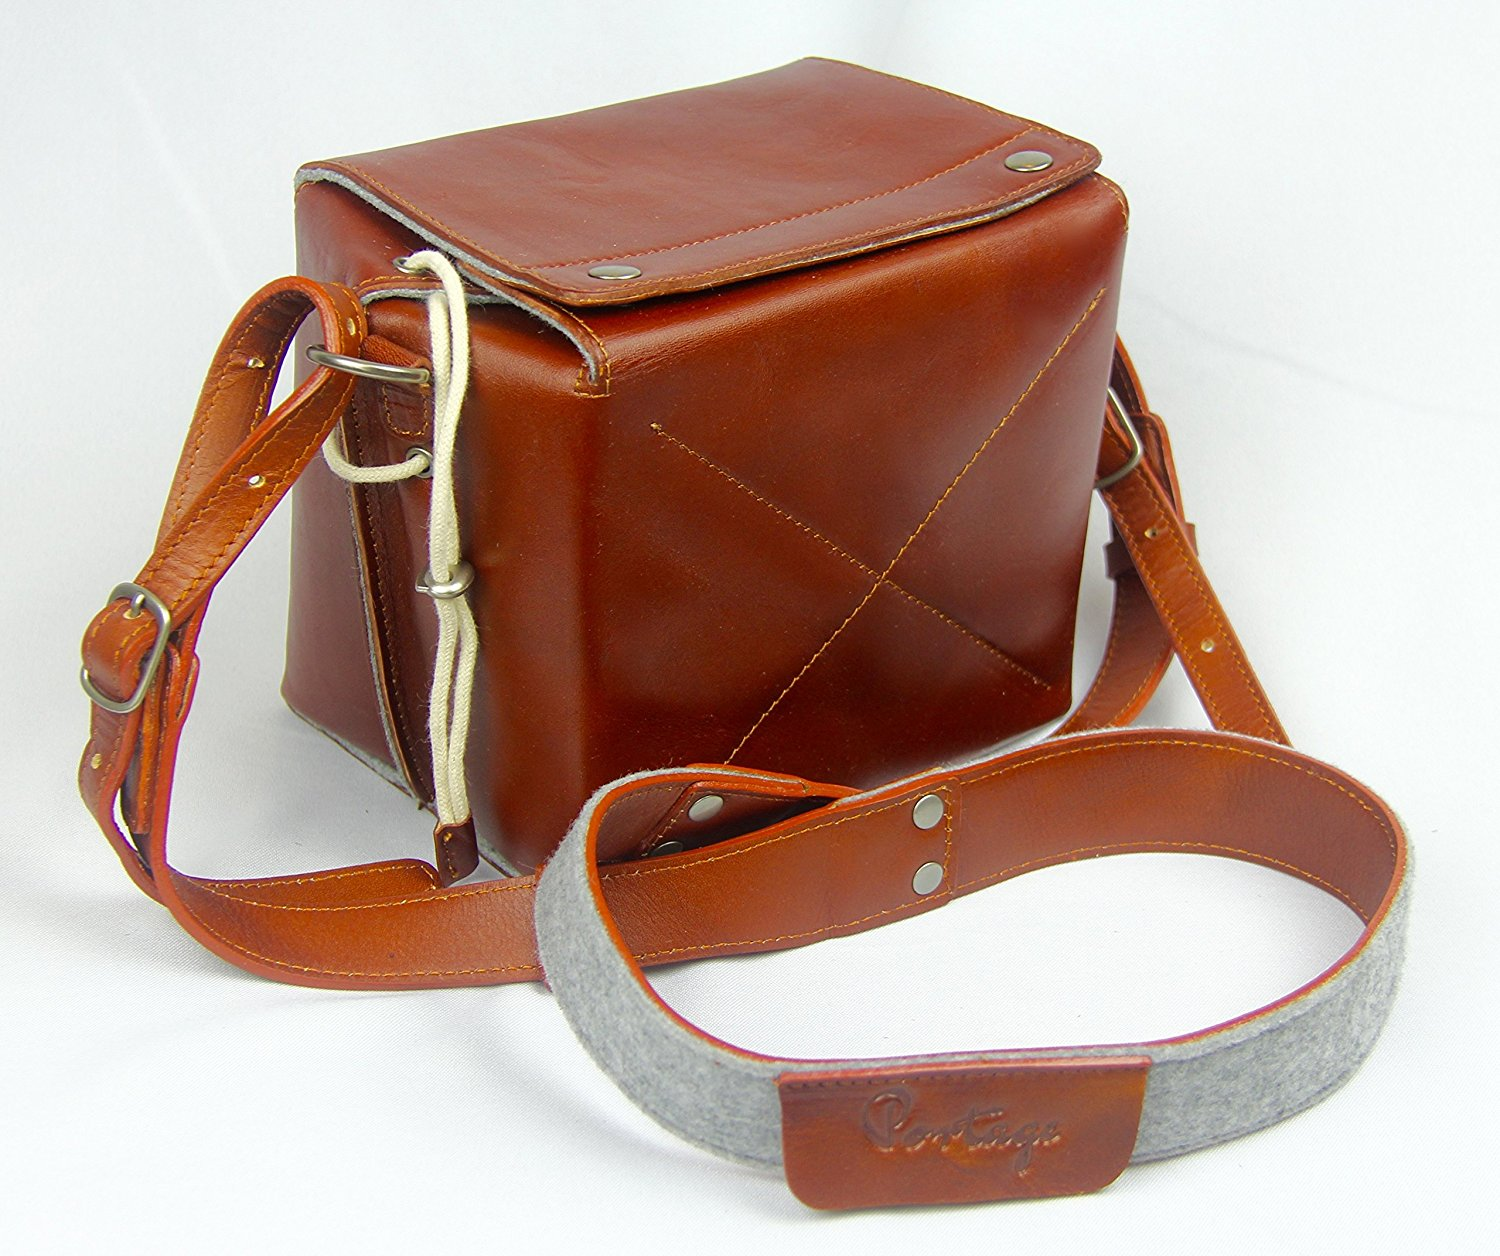 Portage Leather Camera Bag, best leather camera bags, leather bags for camera, leather camera backpack